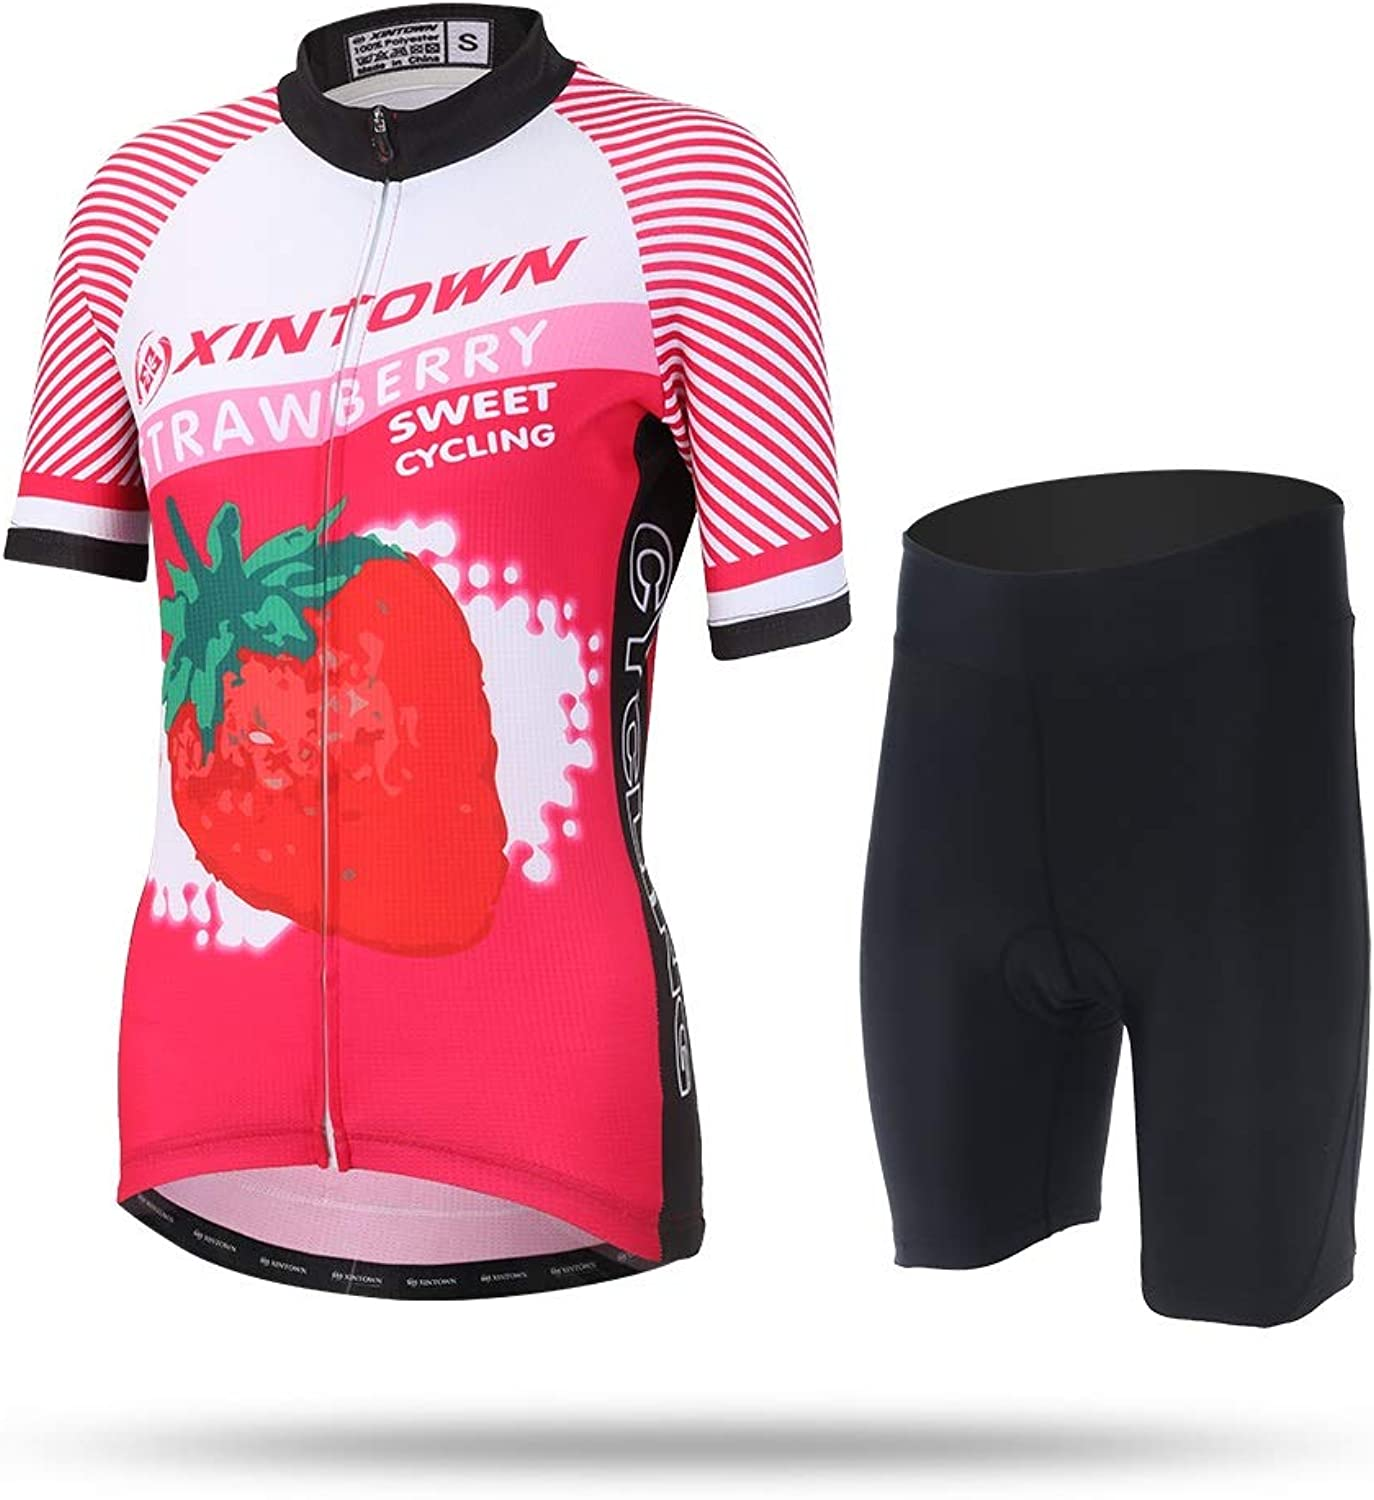 Cycling Jersey Women Summer Bike Short Sleeves Shirts Clothing Women's Sleeve Jacket Quick Dry Breathable Mountain Top Pro Quality MTB Wear Maillot Ropa Ciclismo Racing Clothes Strawberry Printing